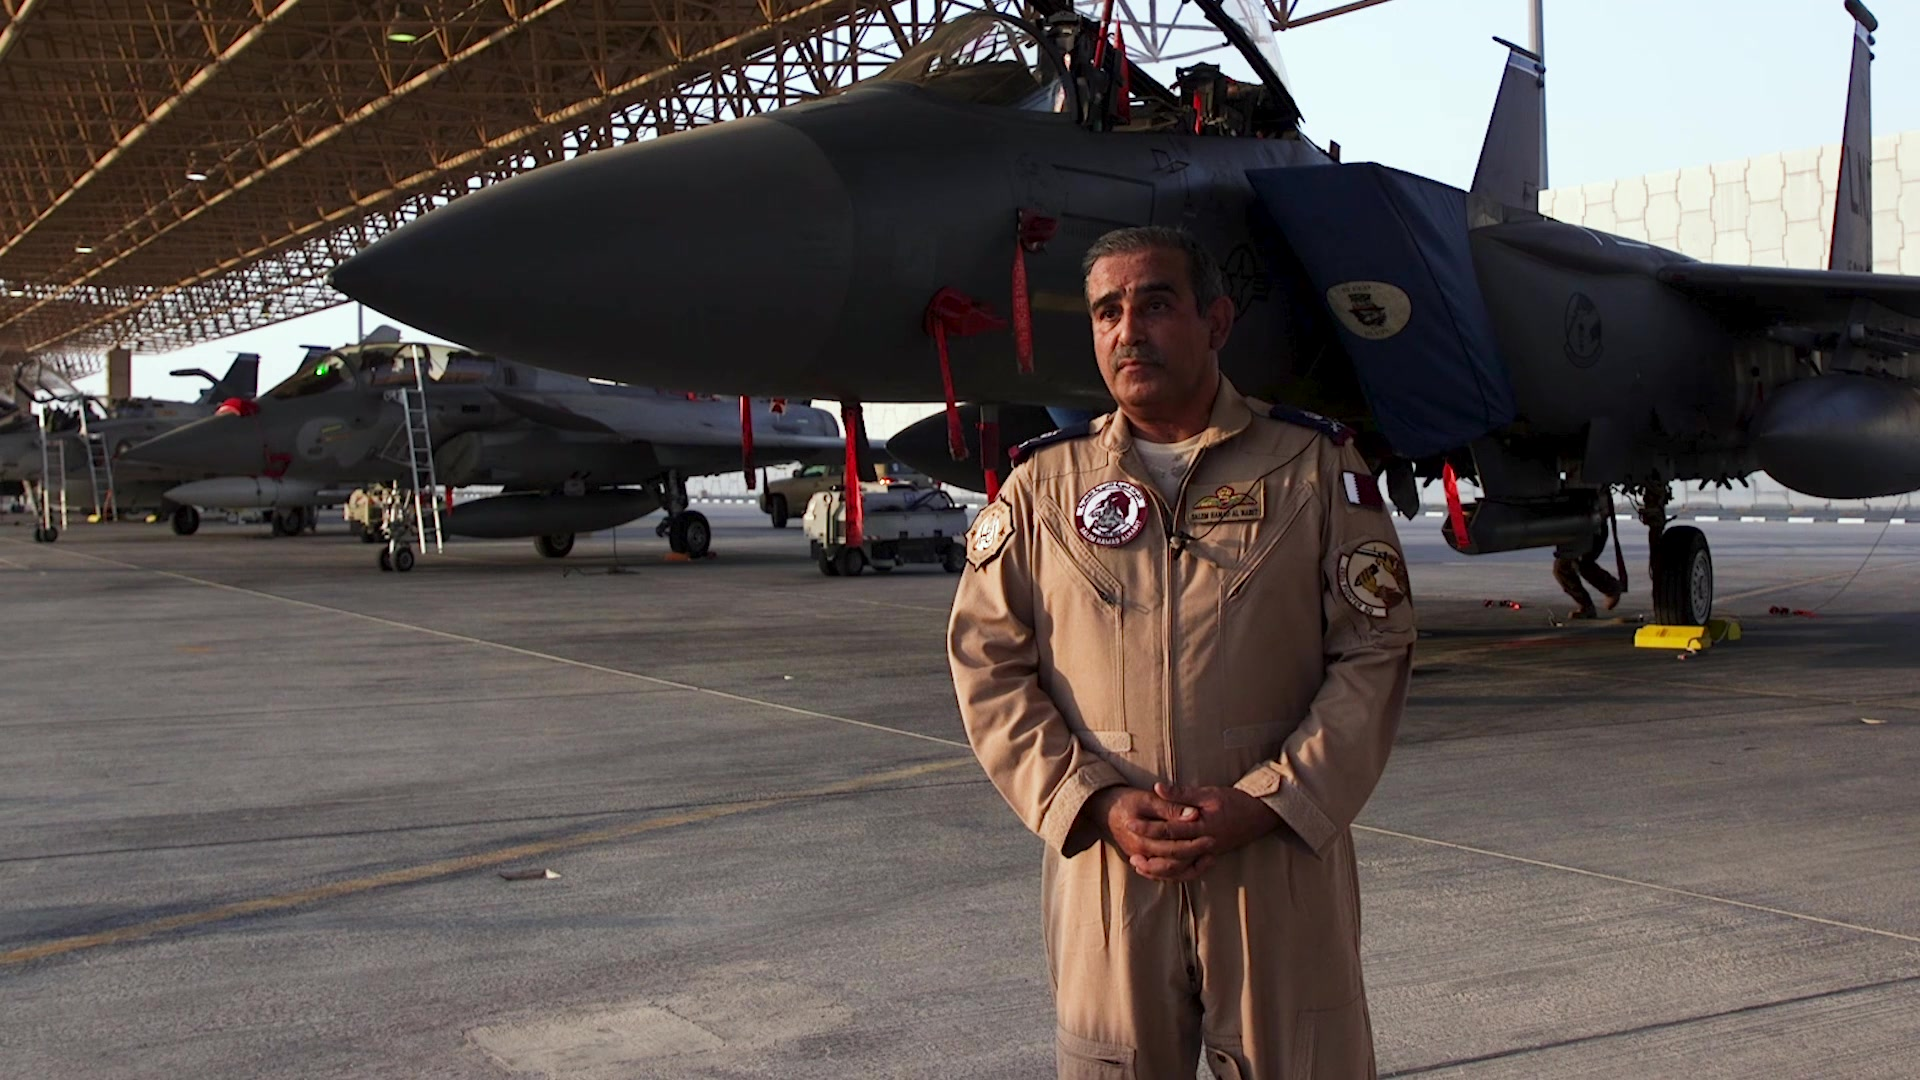 A news highlight video explaining the Qatar and U.S. Air Forces Central Command Friendship Event and the purpose of it - to showcase the F-15E to Qatar Emiri top leadership as they are preparing for their own, similar aircraft, the F-15QA.